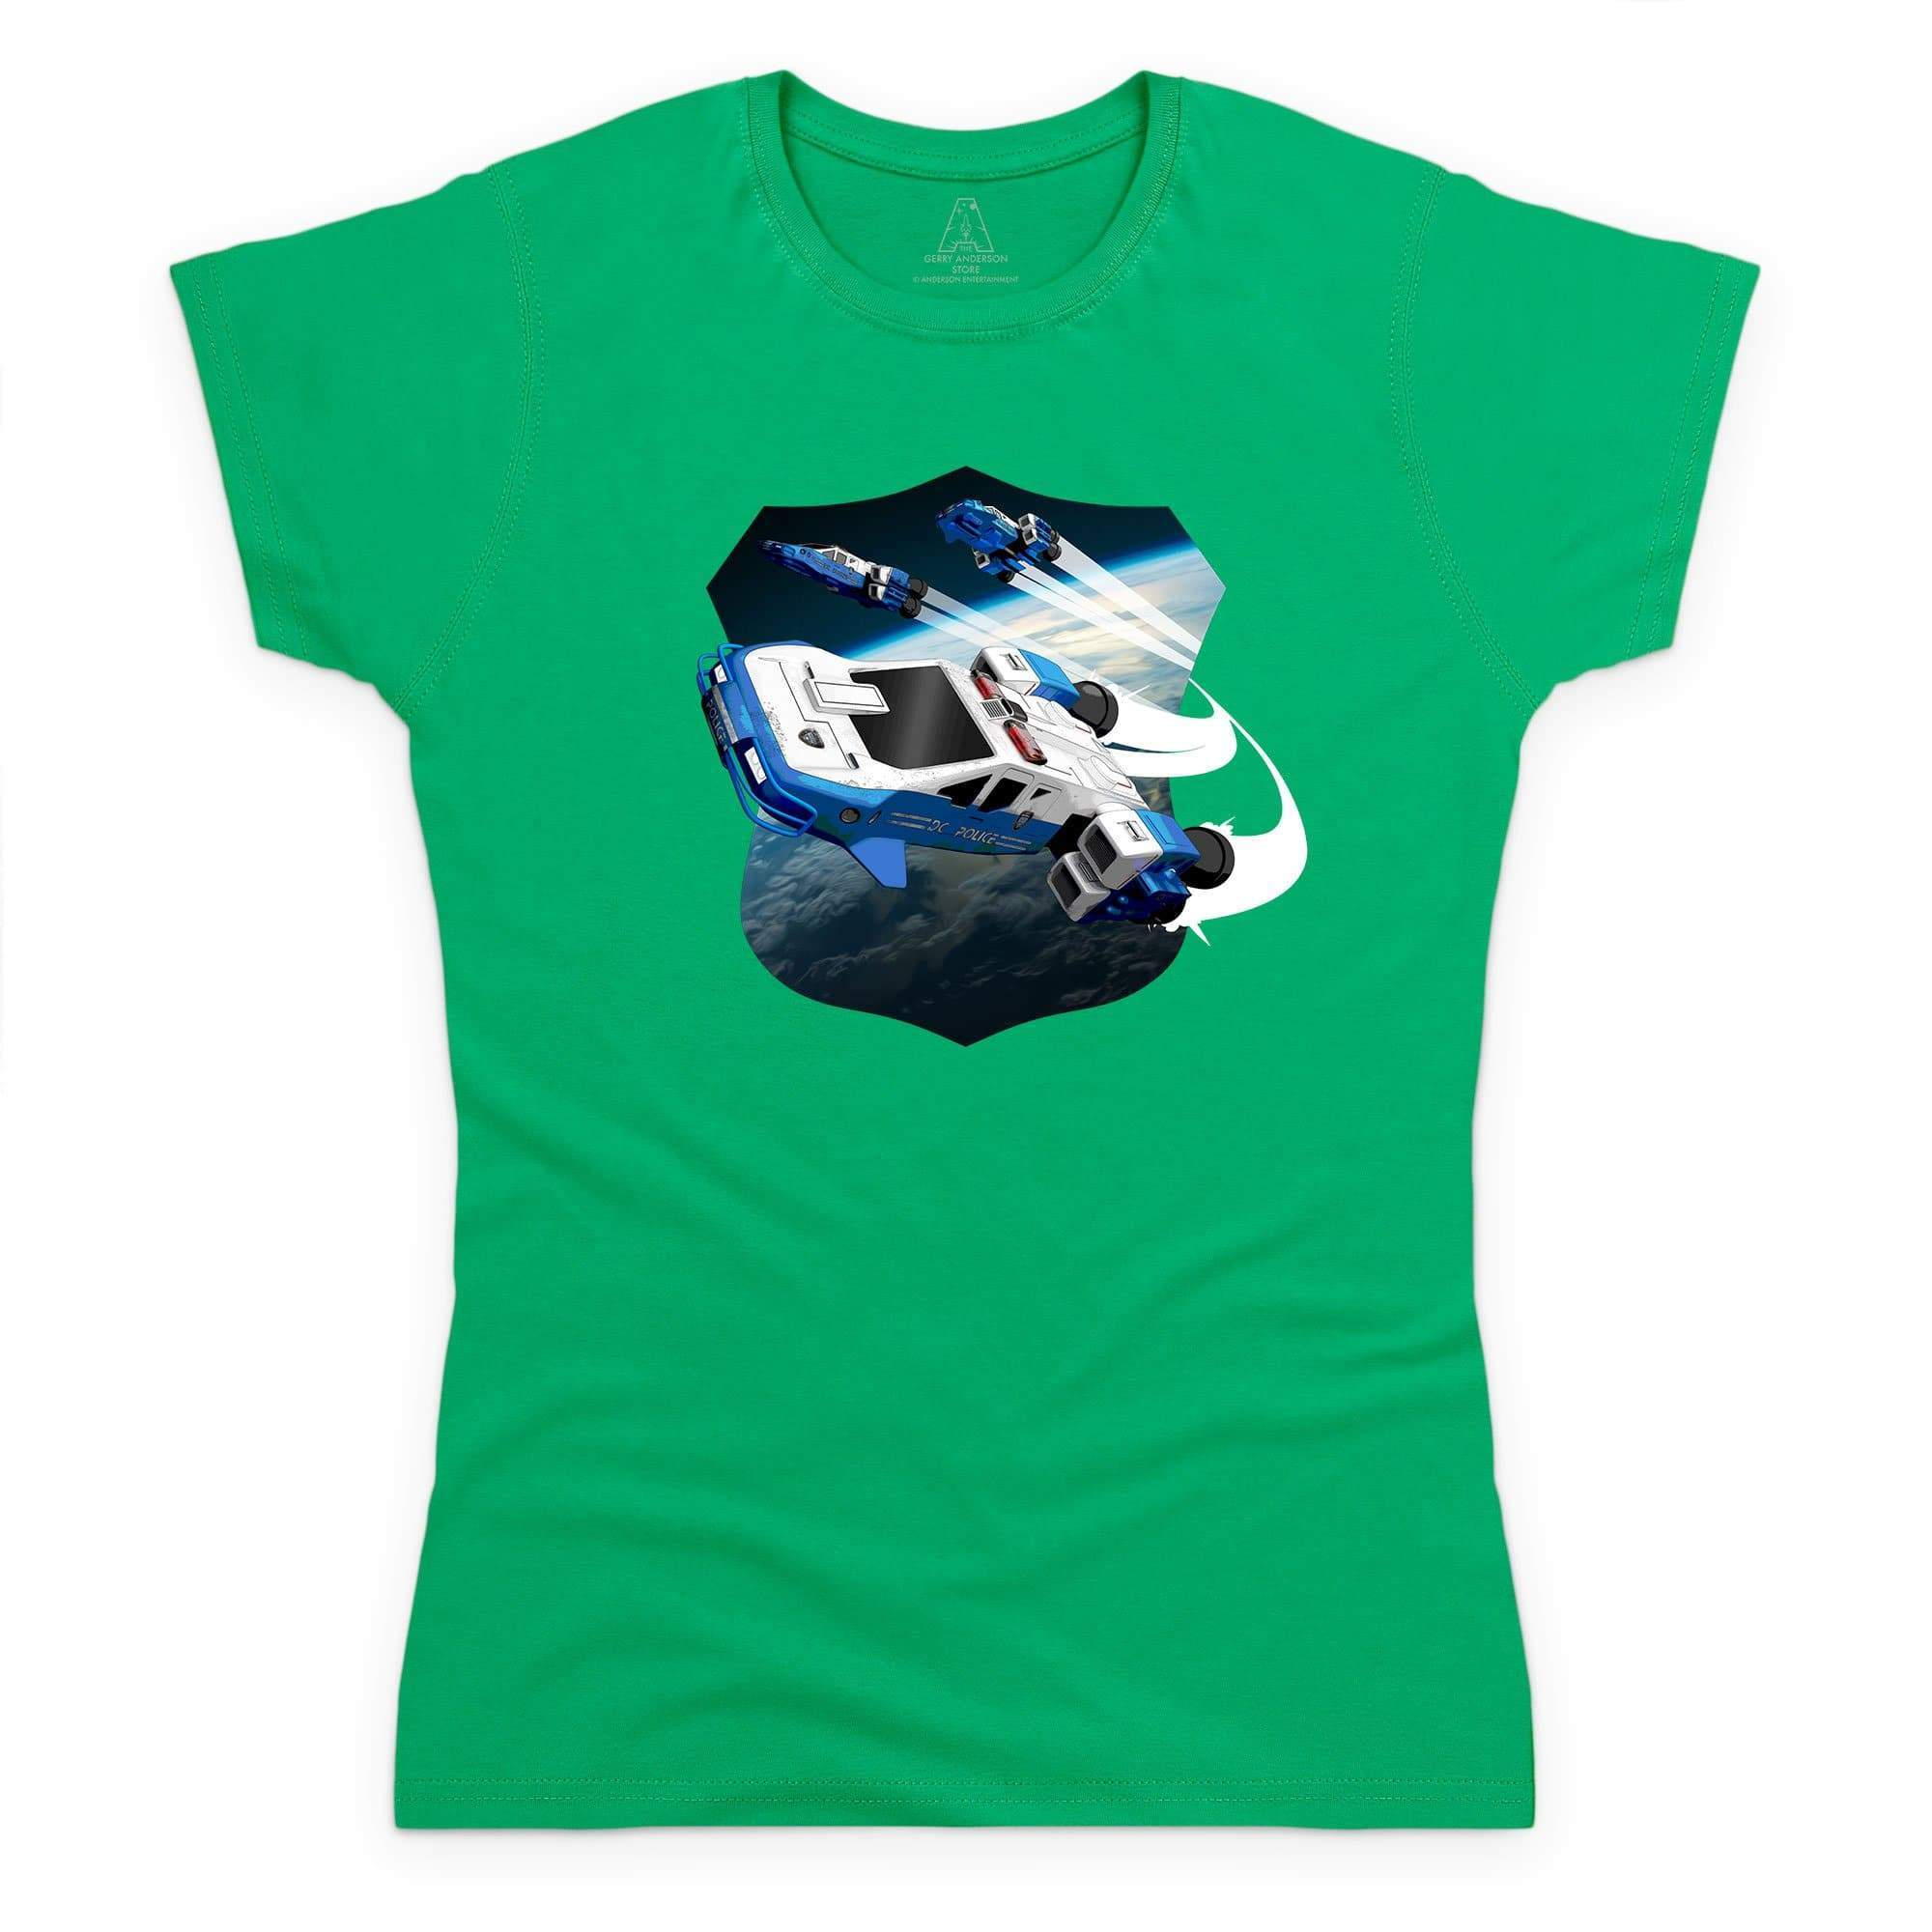 Space Precinct Cruiser Women's T-Shirt [Official & Exclusive] - The Gerry Anderson Store